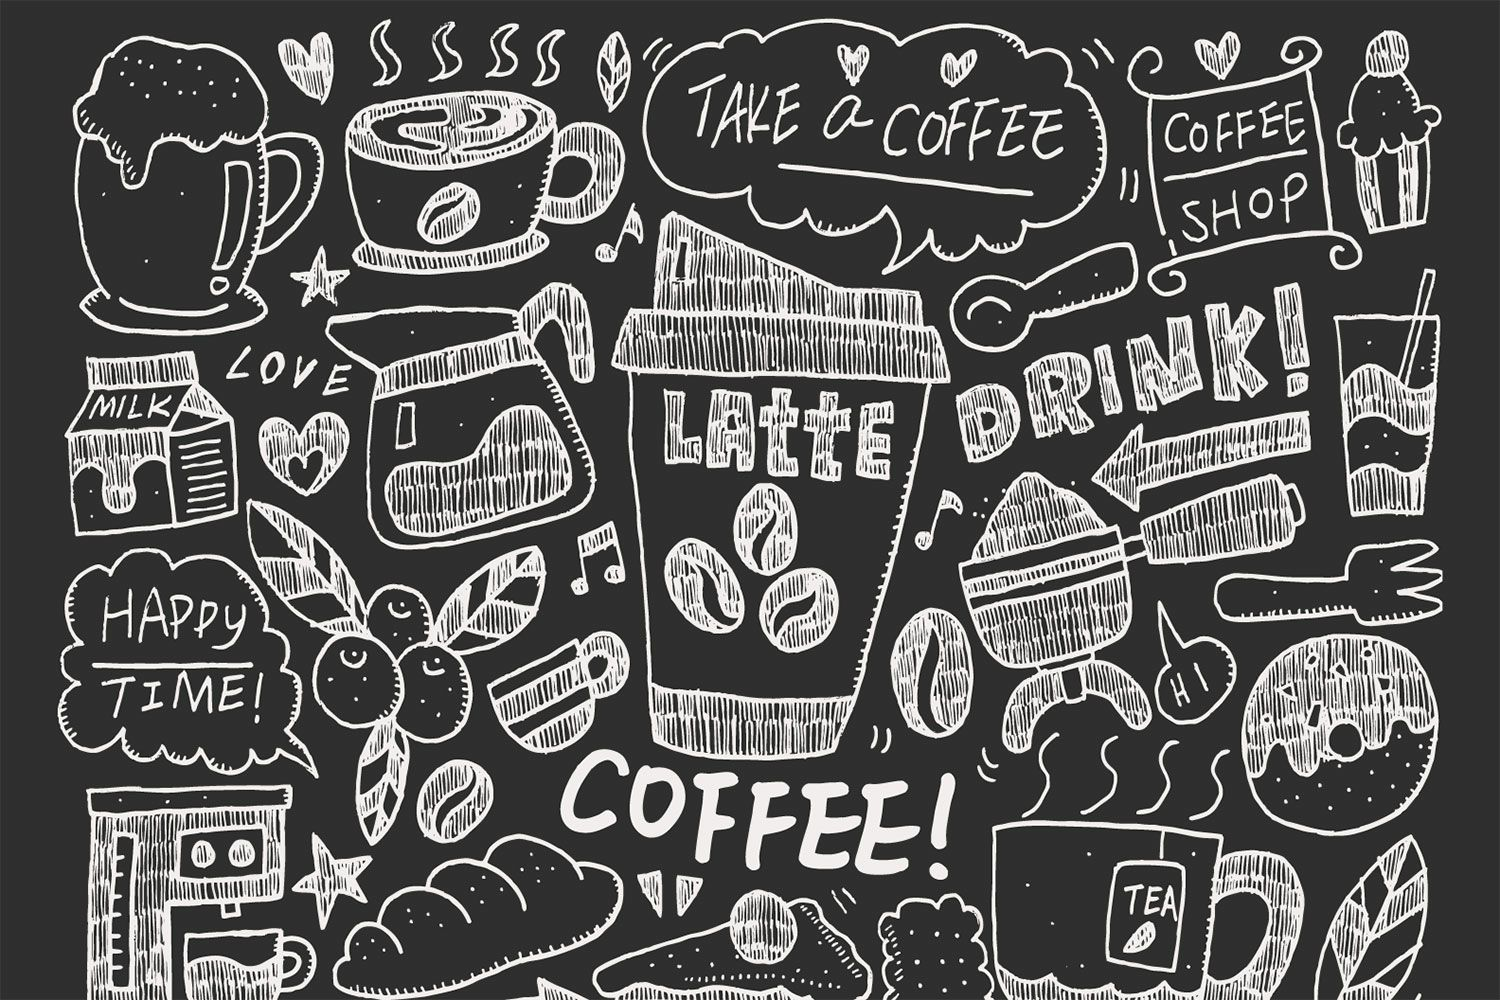 coffee doodle wallpaper for cafe decor | [wall coverings